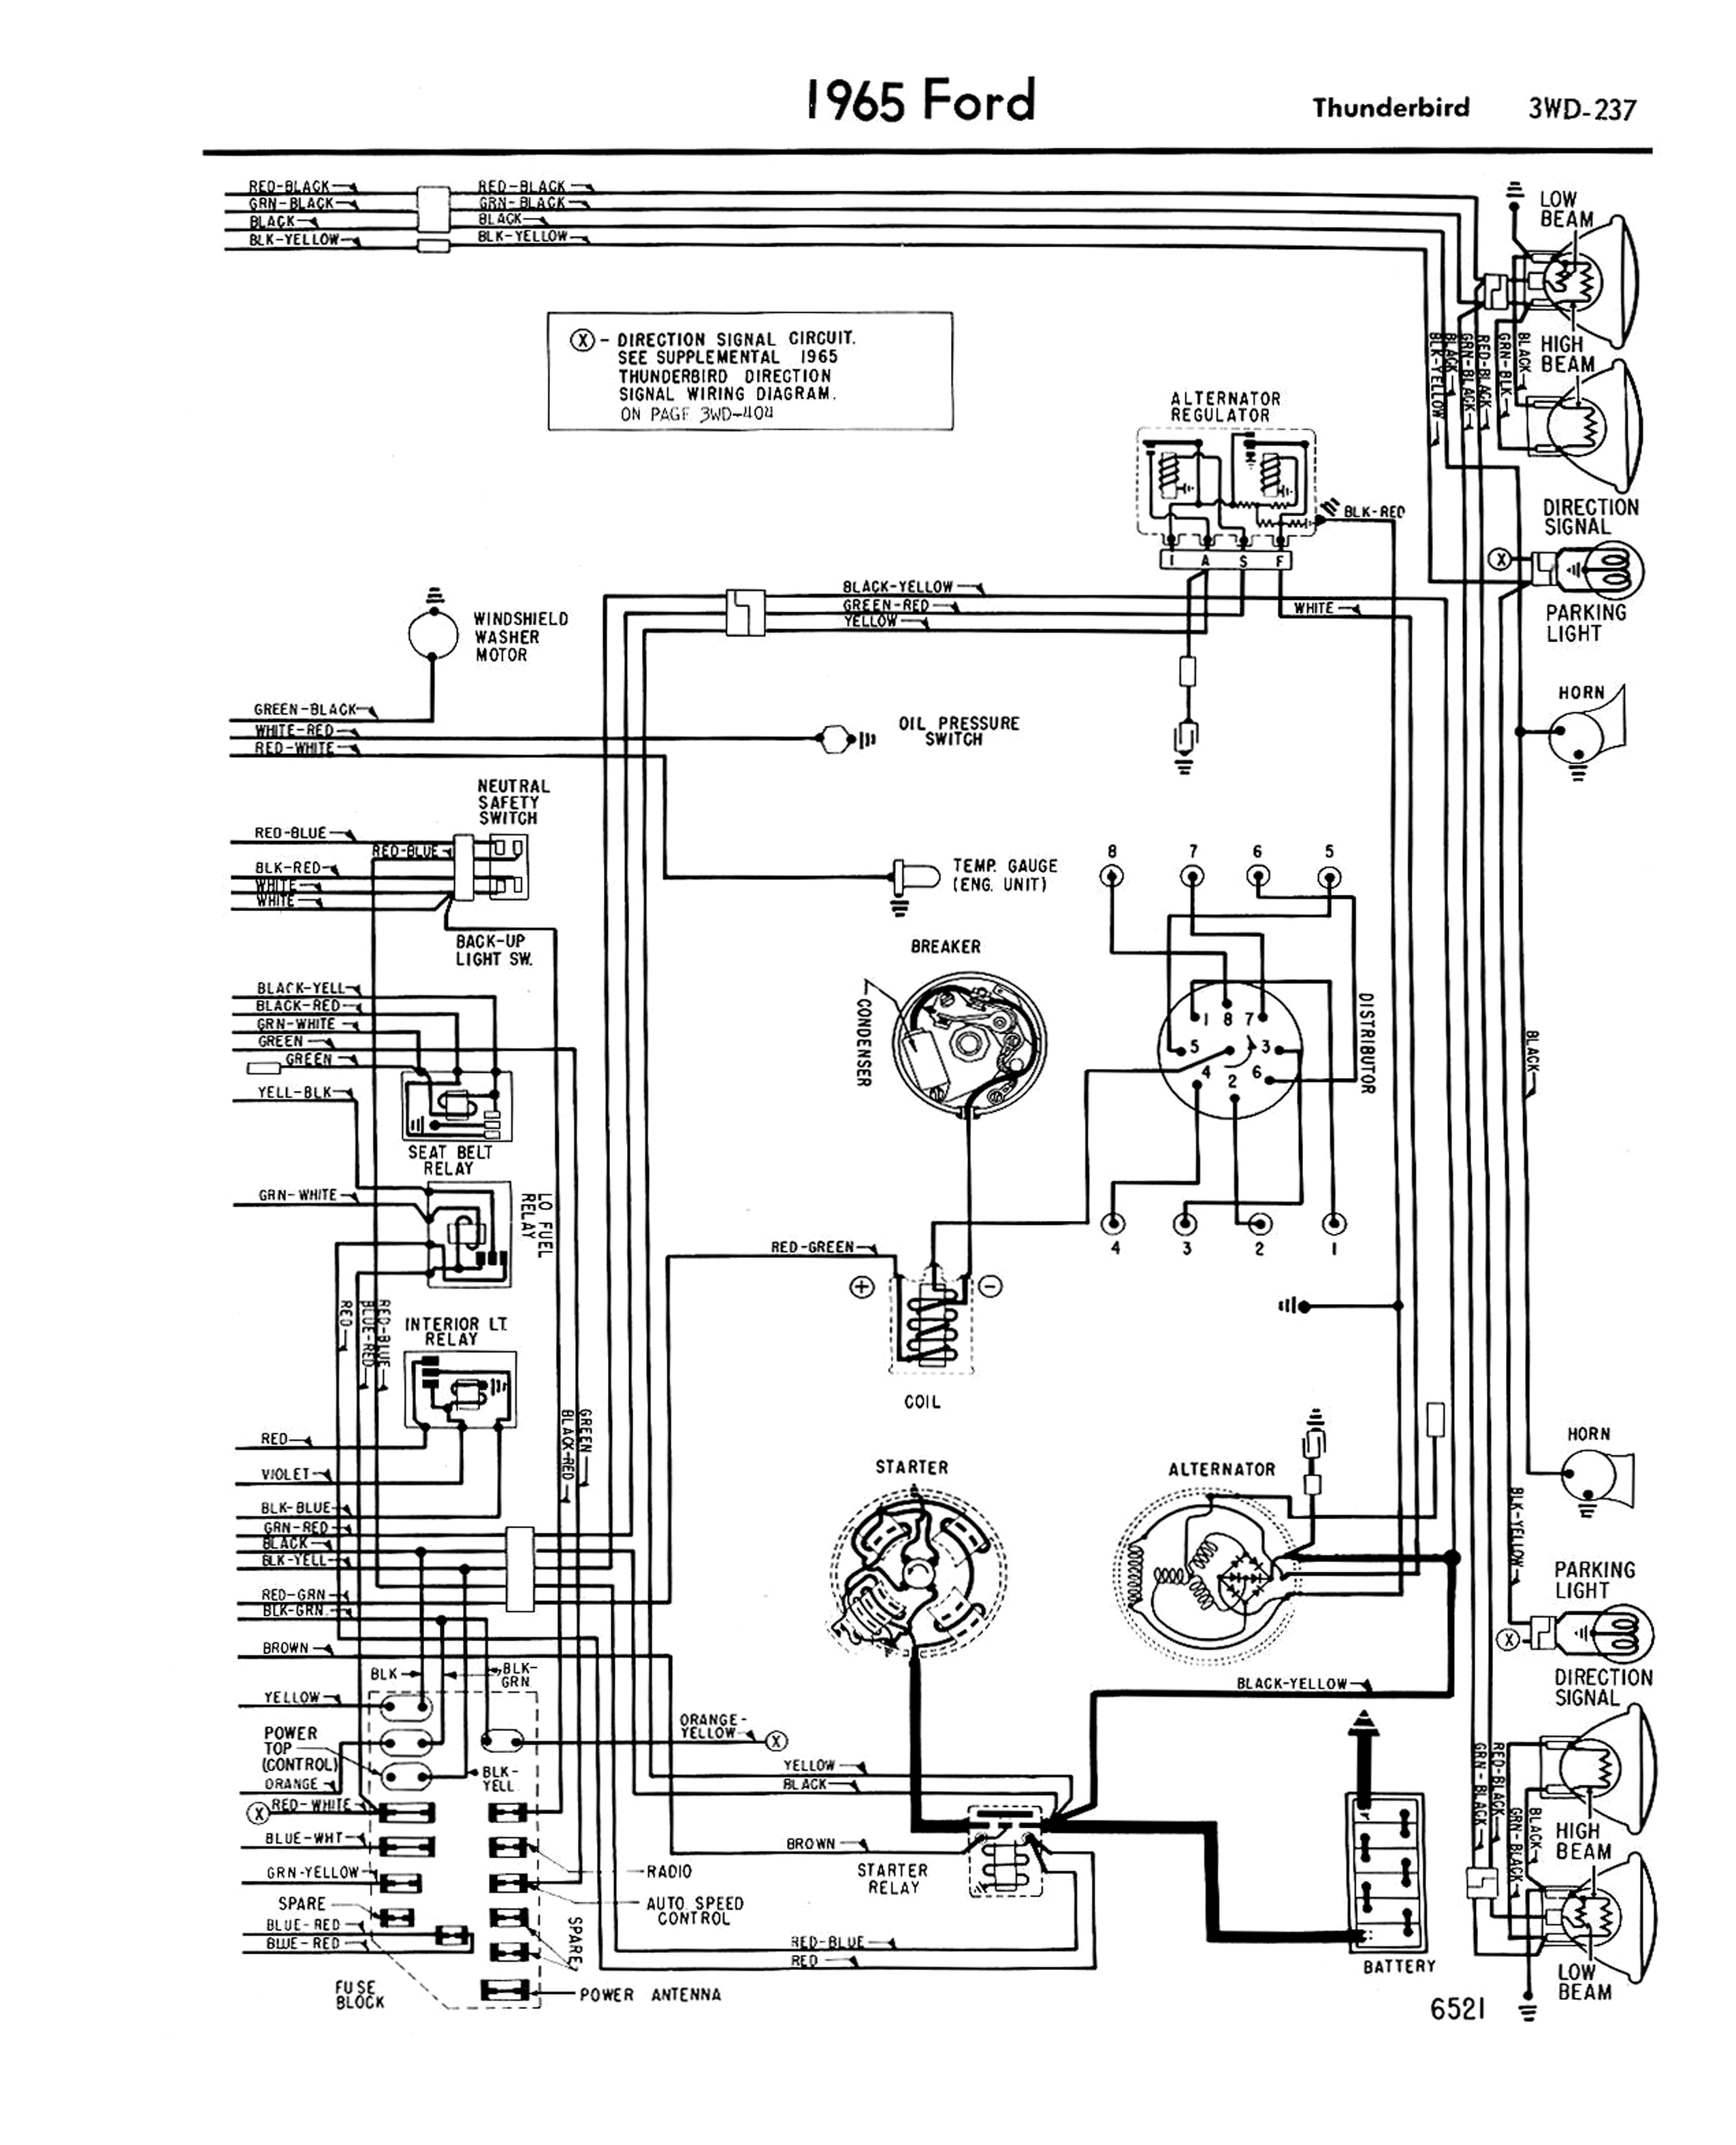 1966 corvette turn signal wiring diagram sonos system 1958-68 ford electrical schematics